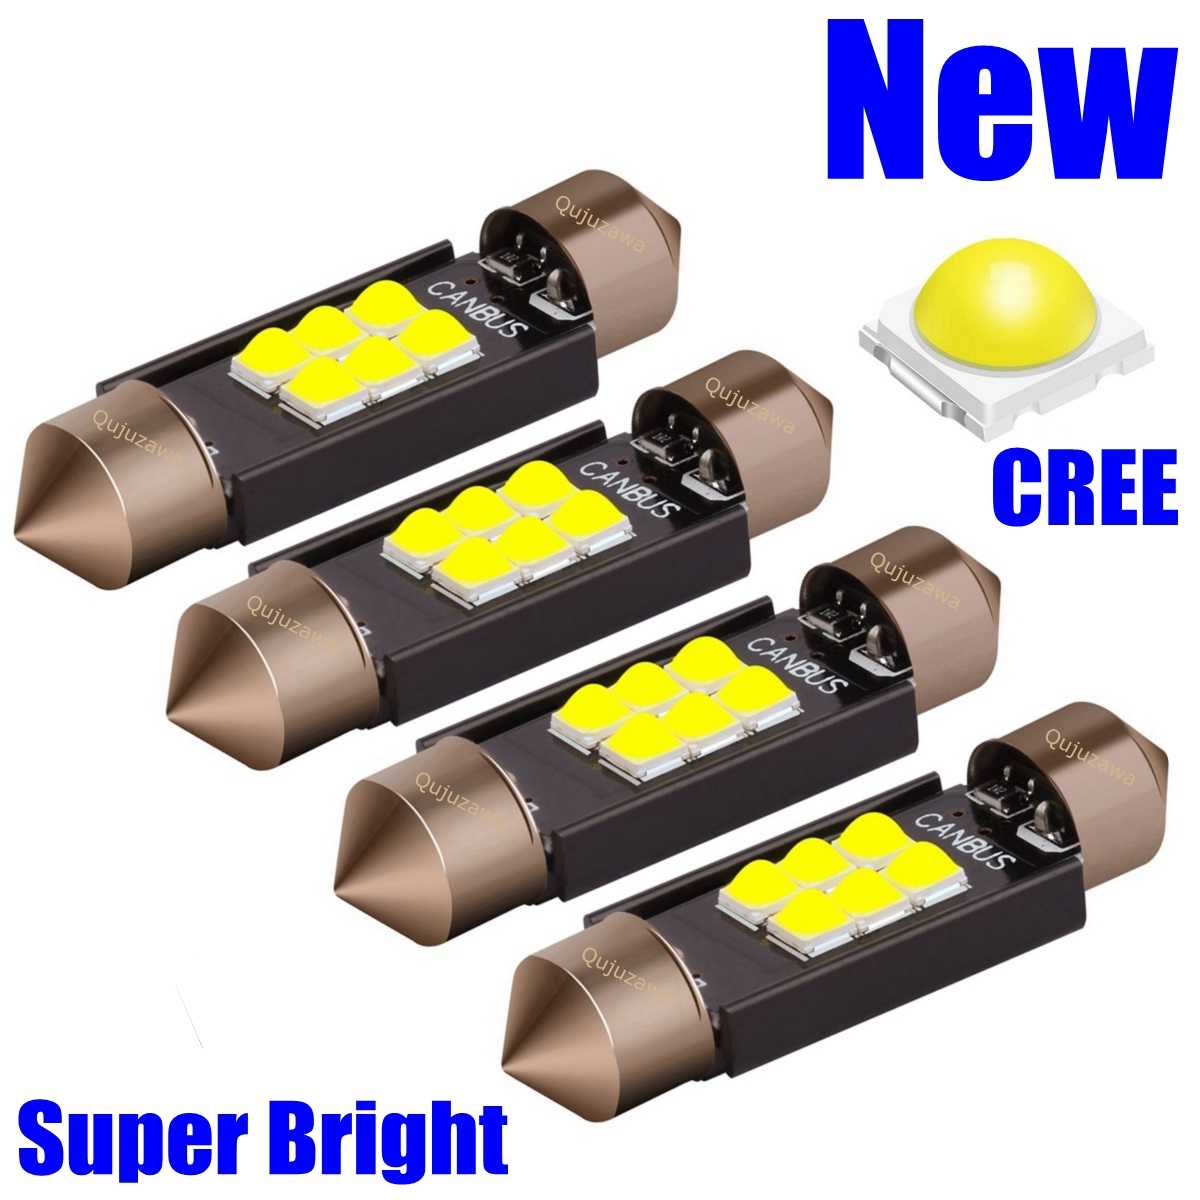 4Pcs Festoon 31Mm 36Mm 39Mm 41Mm Lampu LED C5W C10W Super Bright LED Canbus Tanpa kesalahan Auto Interior Doom Lampu Mobil Lampu Baca